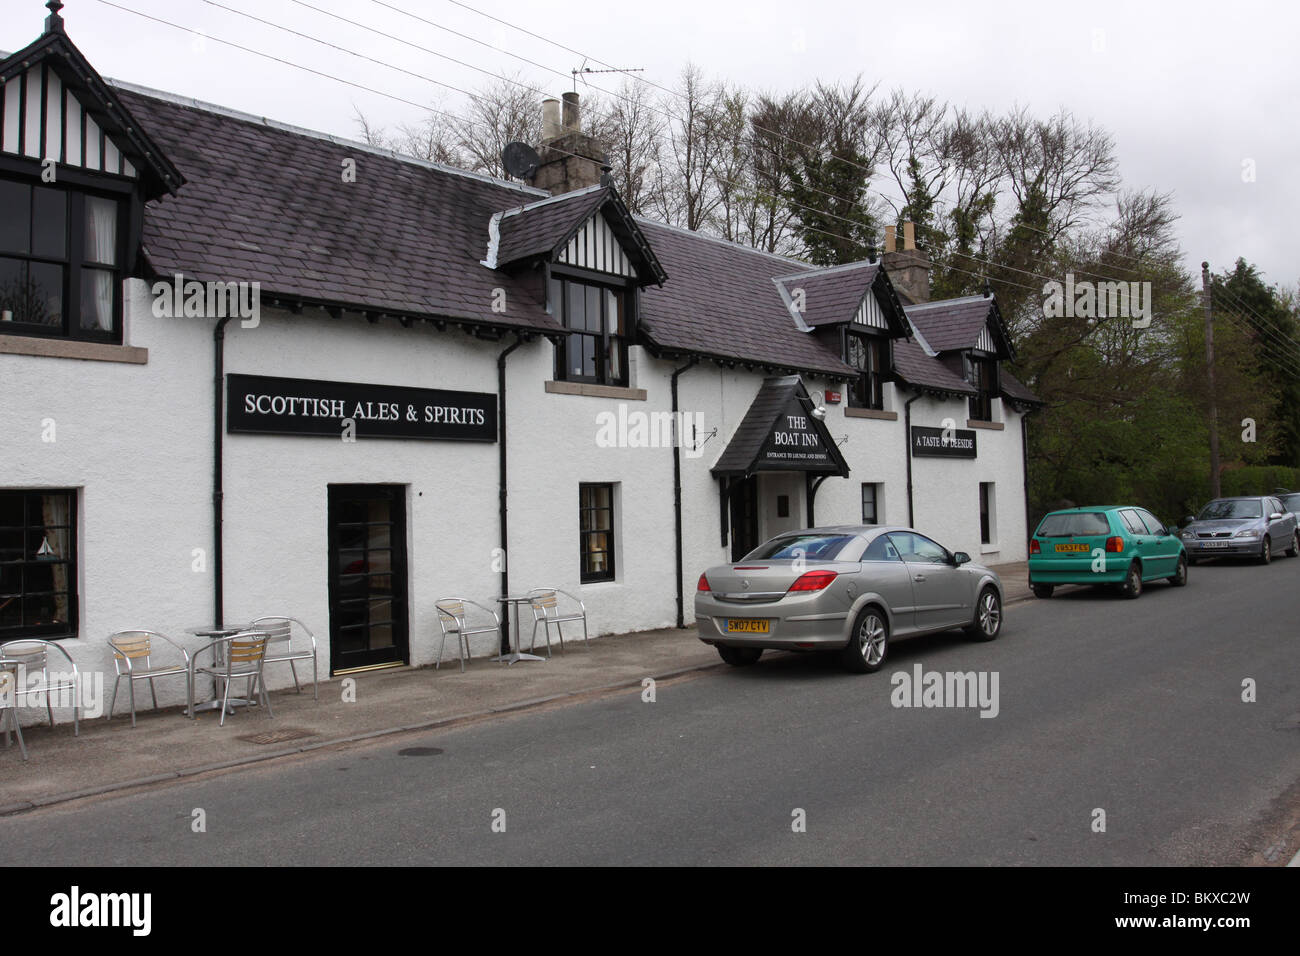 The Boat Inn Aboyne Aberdeenshire Scotland  May 2010 - Stock Image